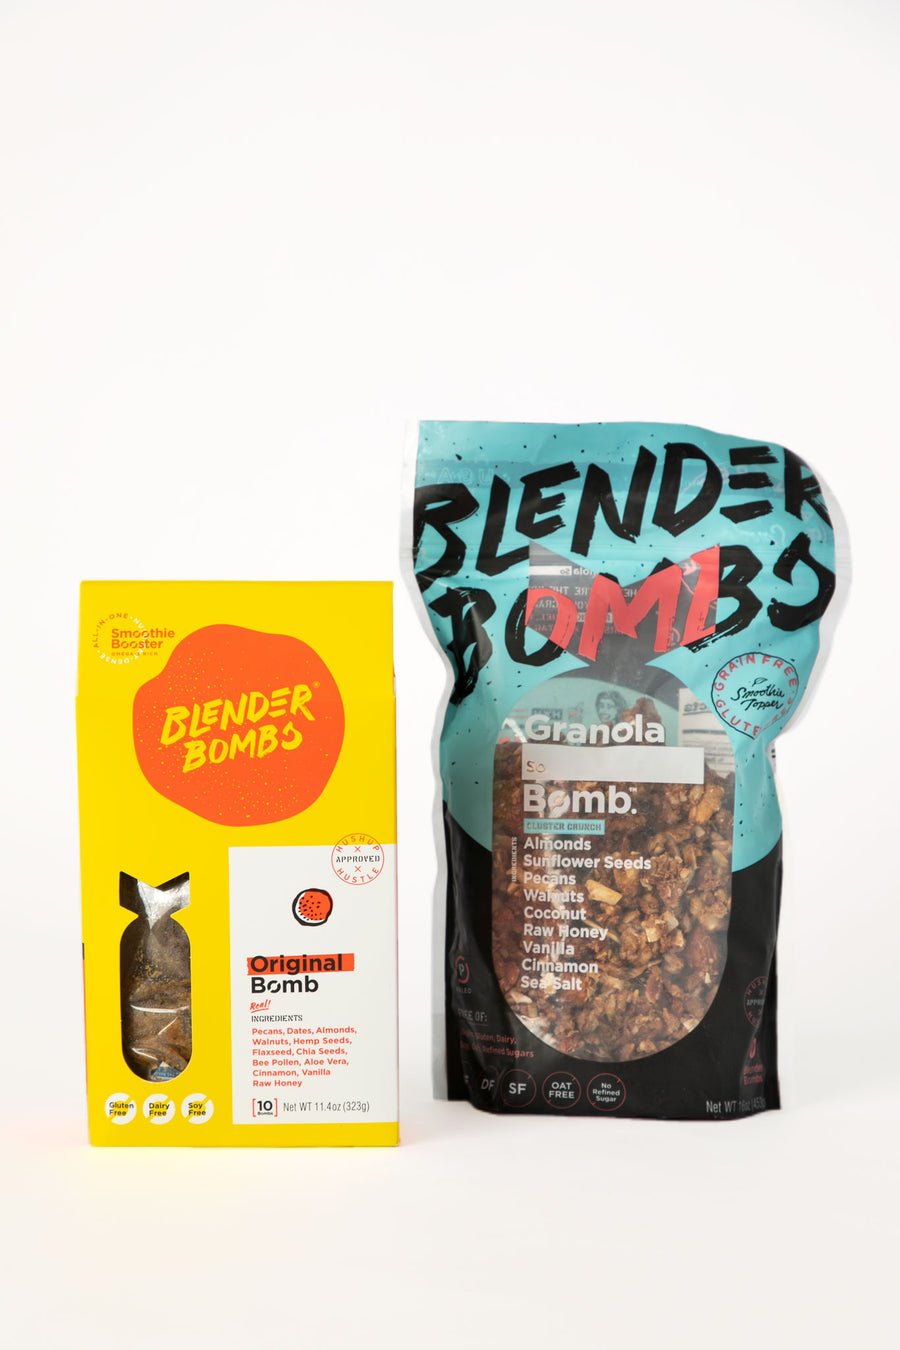 Blender Bombs + Granola